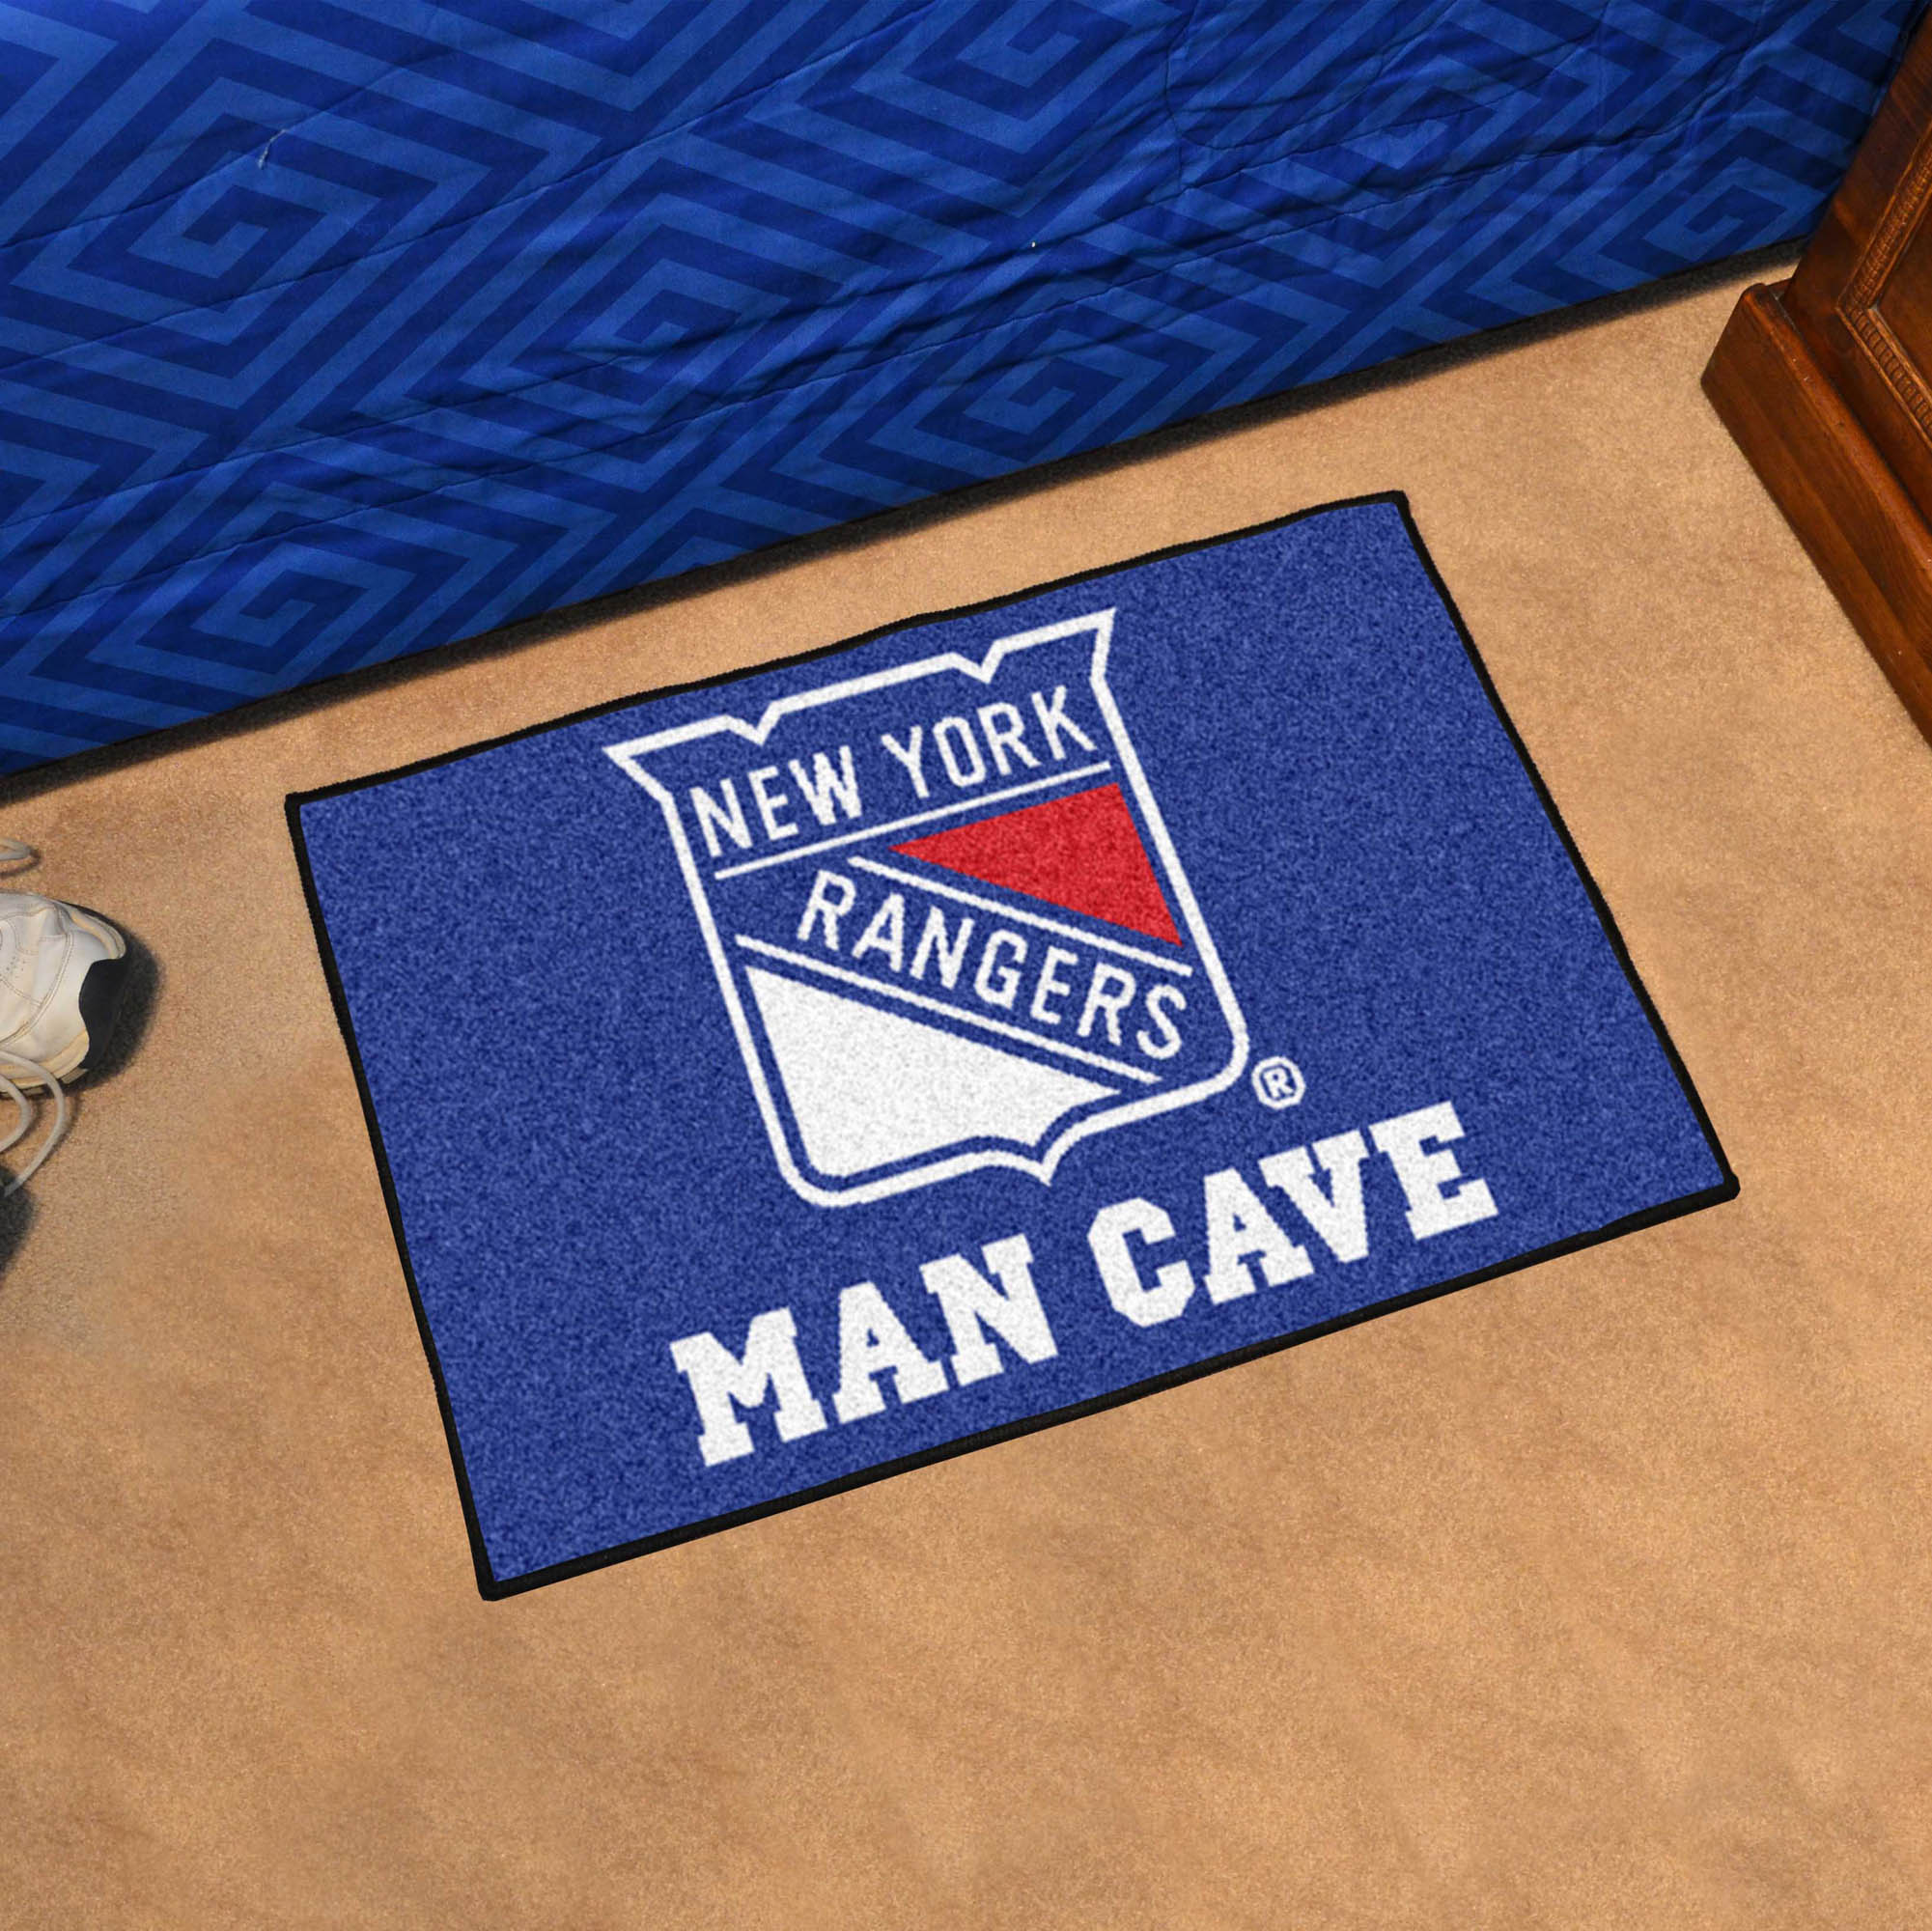 New York Rangers MAN CAVE 20 x 30 STARTER Floor Mat